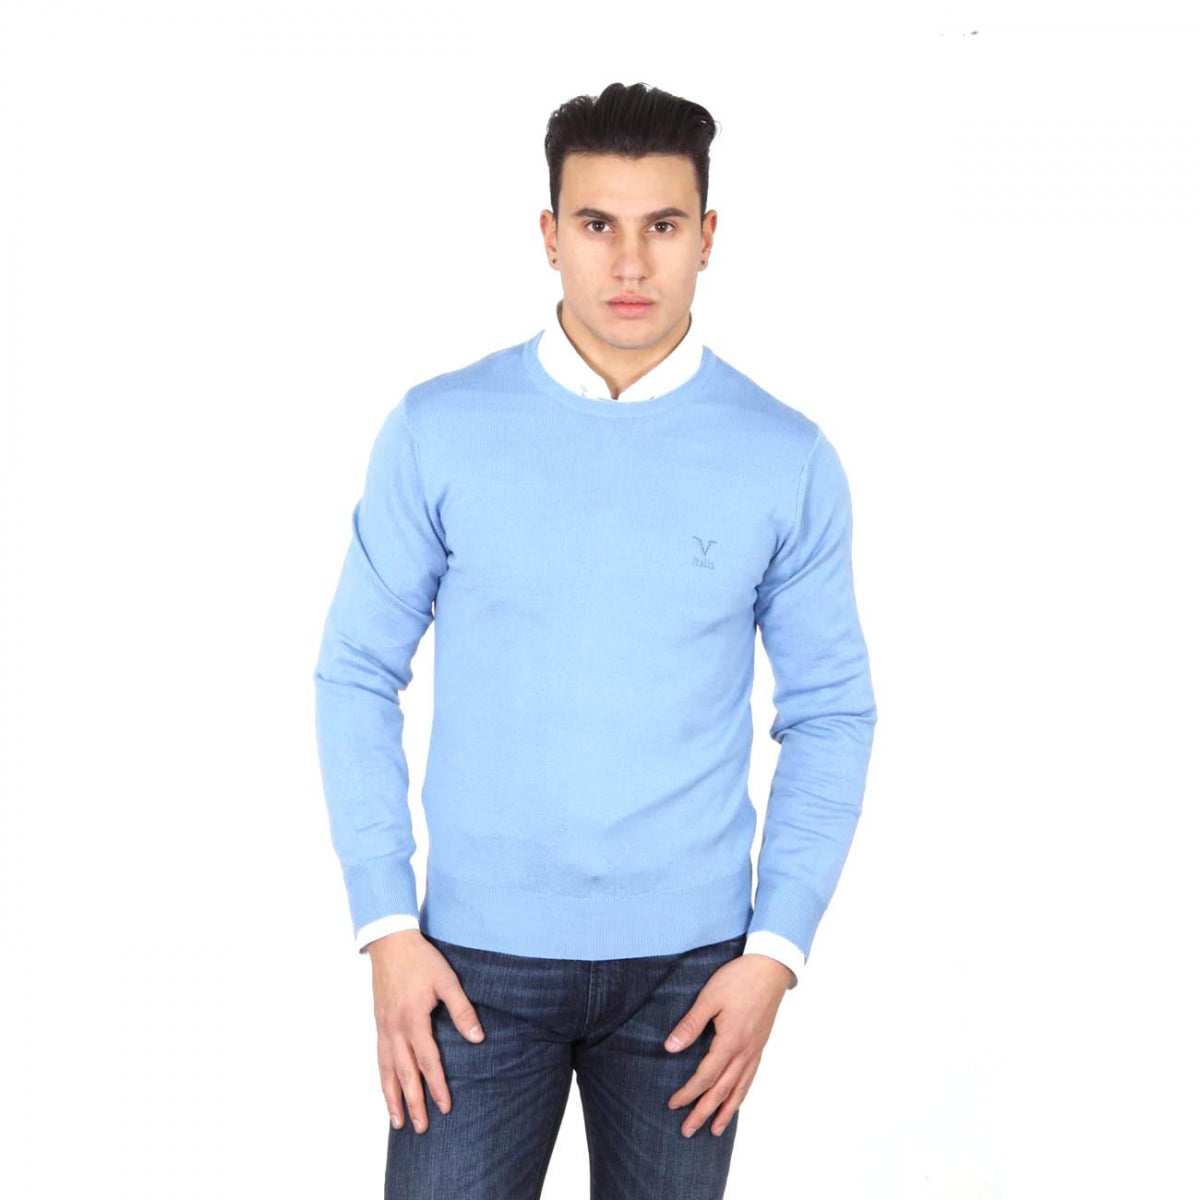 V 1969 Italia mens round neck sweater 9800 GIROCOLLO AZZURRO